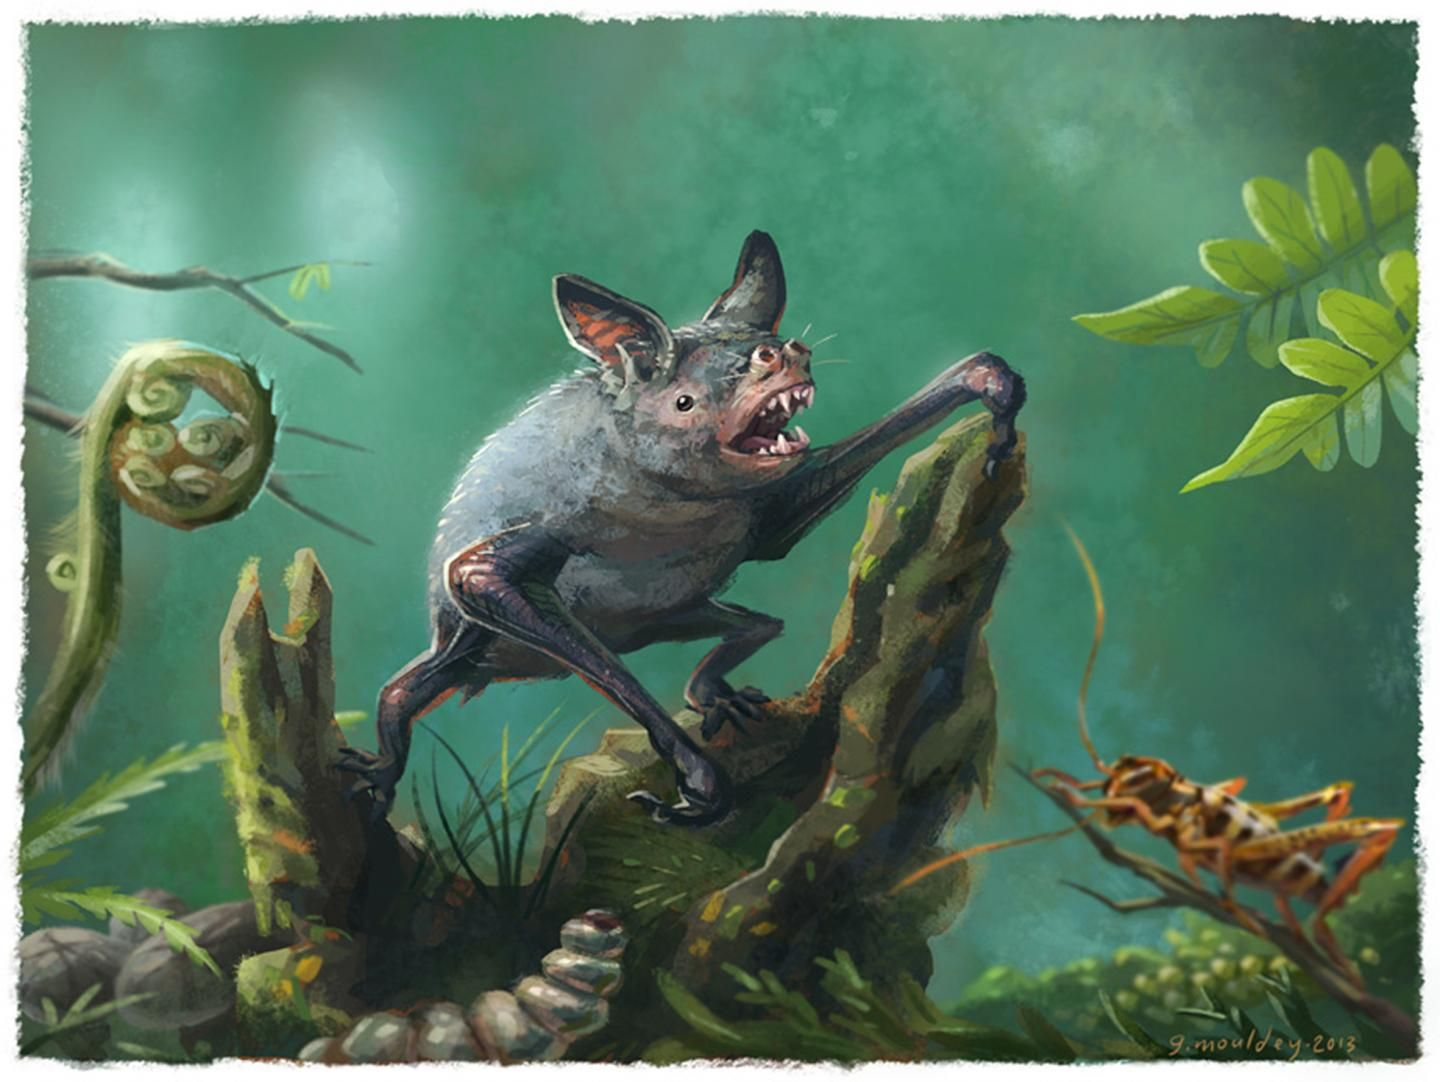 Giant extinct bat that crawled on four legs 16 million years ago was discovered in New Zealand